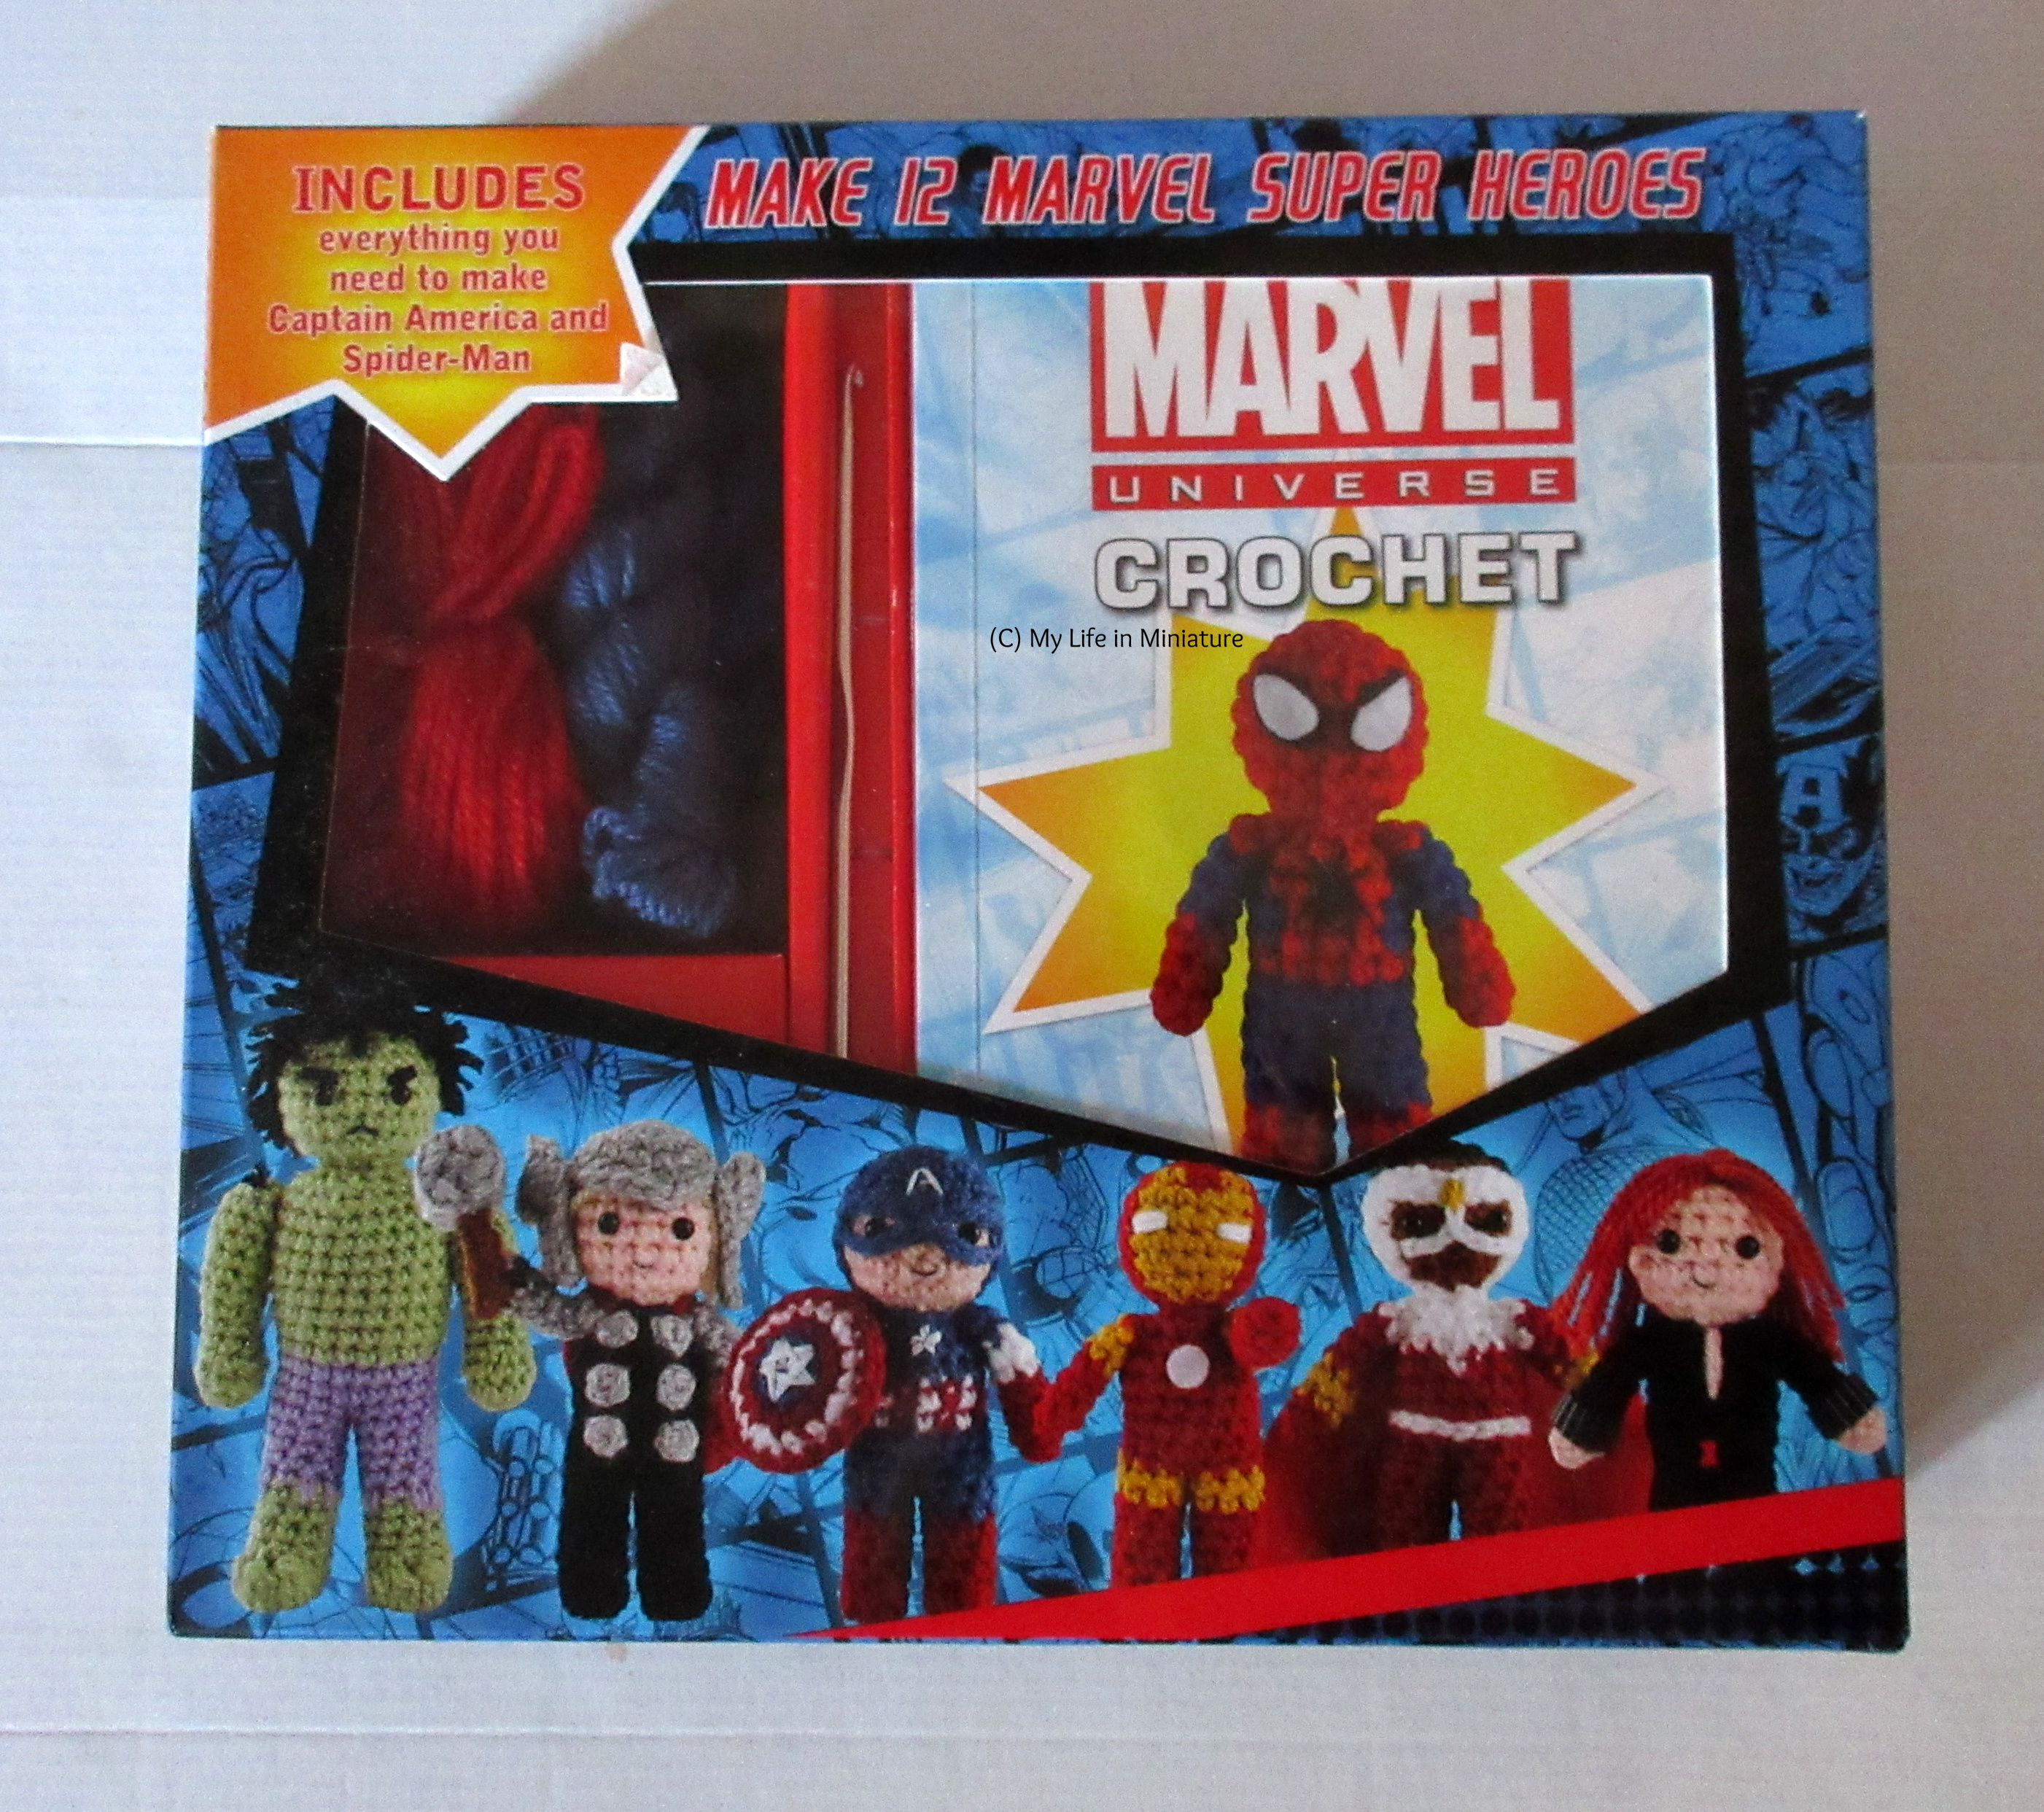 A box sits in a white background. The box is printed with, and includes, materials and instructions to make two small Marvel superhero dolls from crochet.